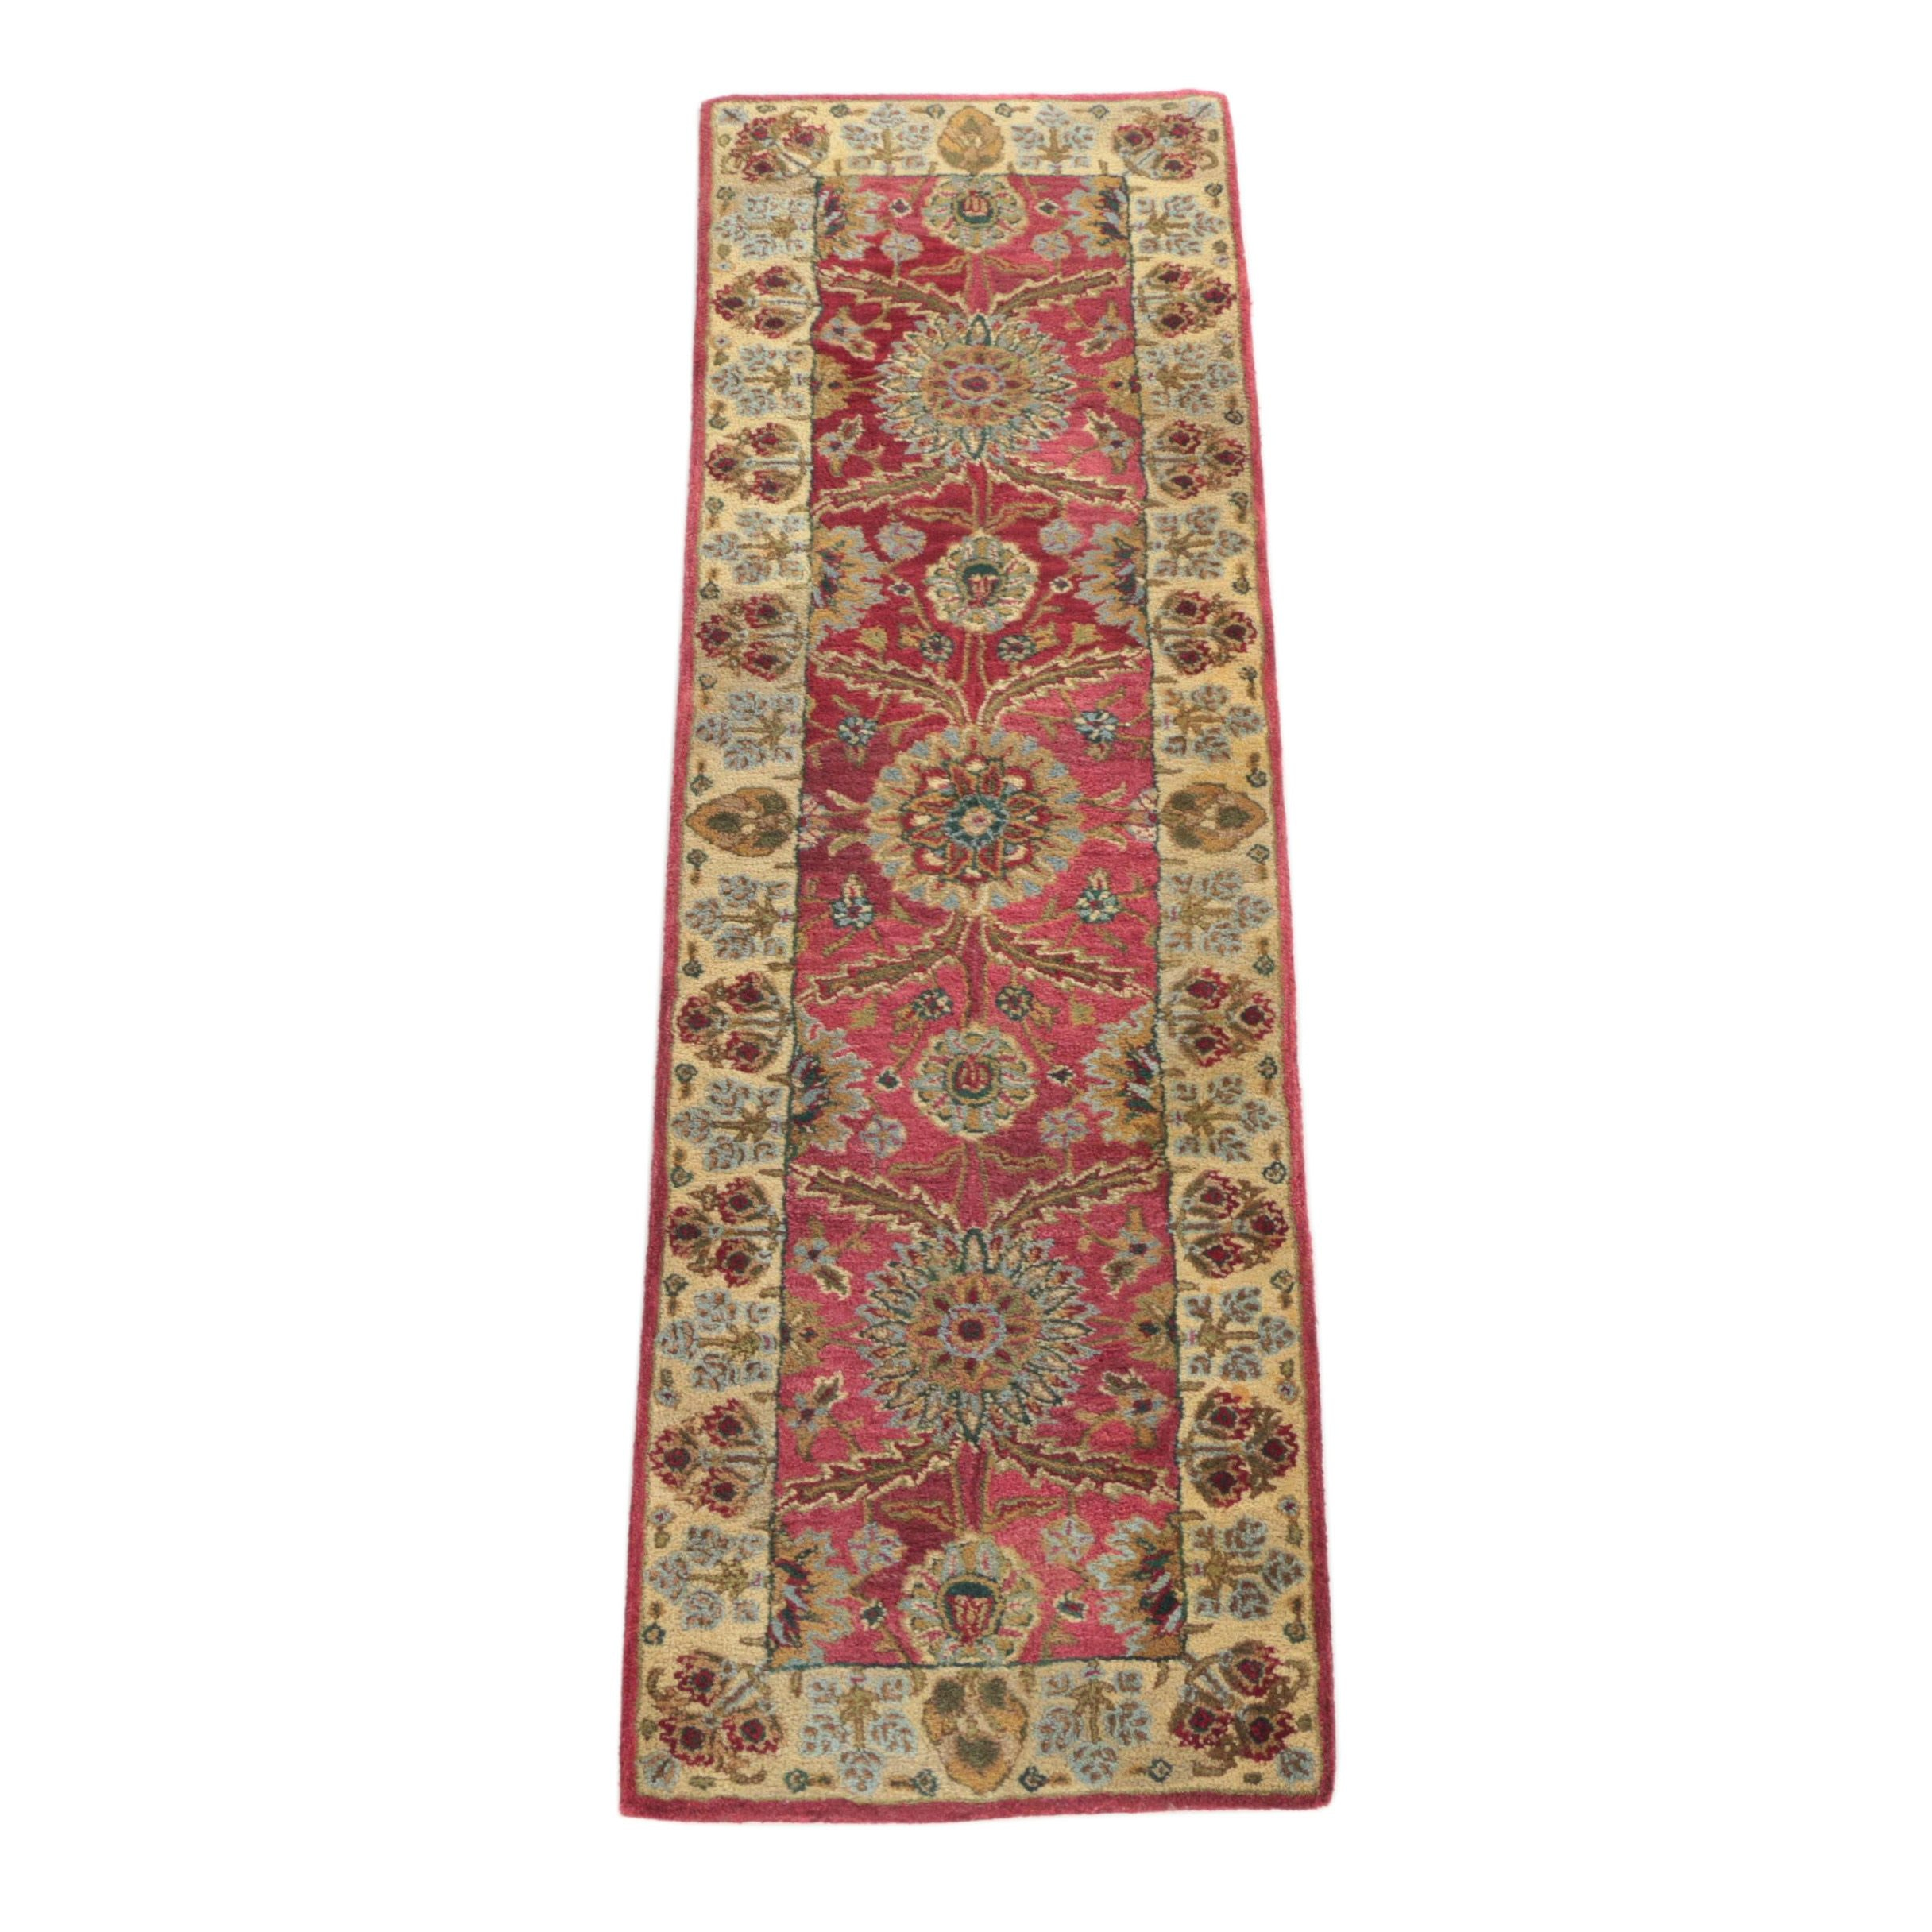 "Hand-Tufted Indian ""Jaipur Collection"" Carpet Runner"